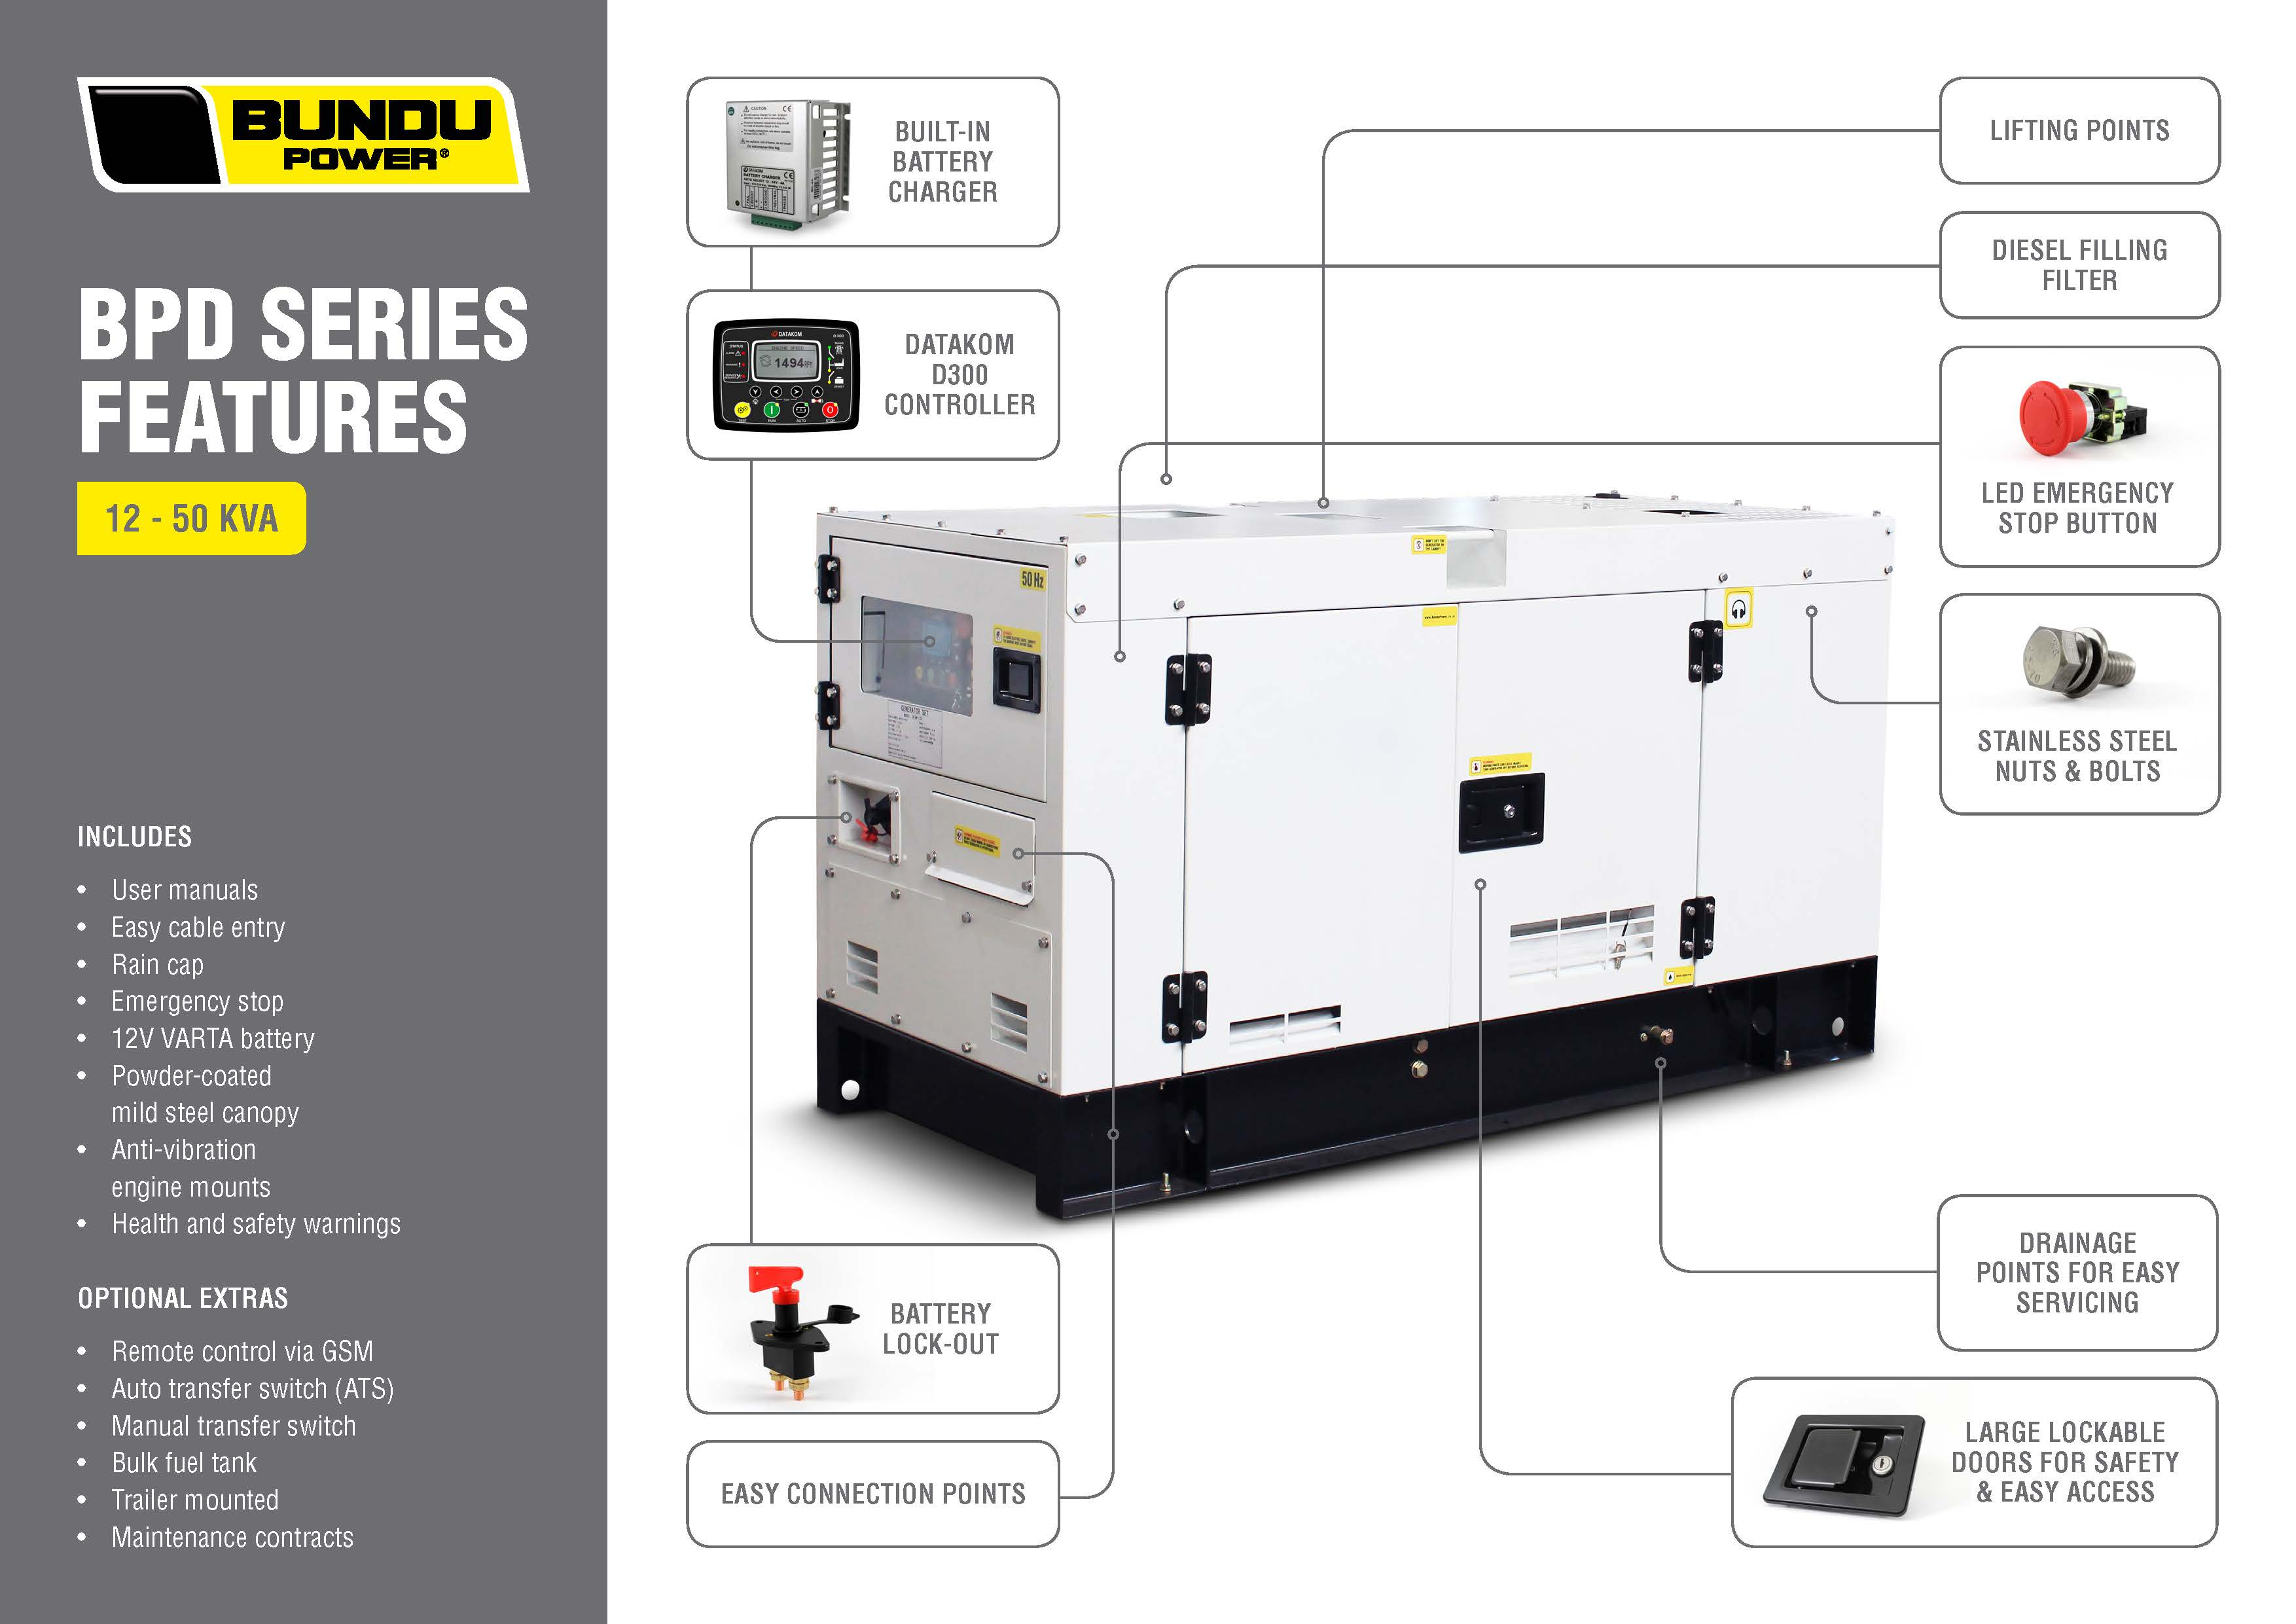 Bundu Power Bpd50s3 Diesel Generators